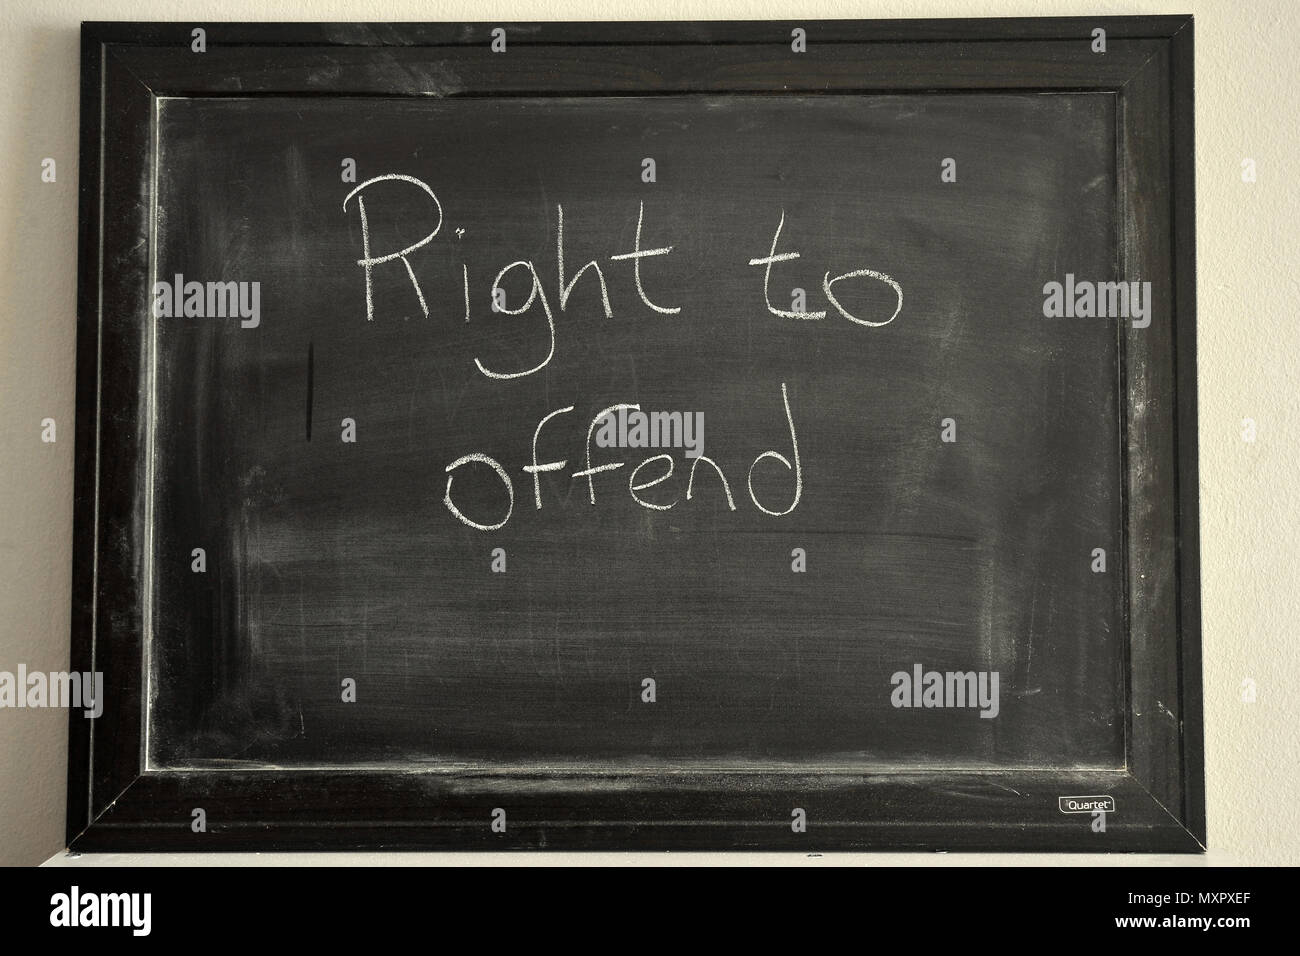 Right to offend written in white chalk on a blackboard - Stock Image